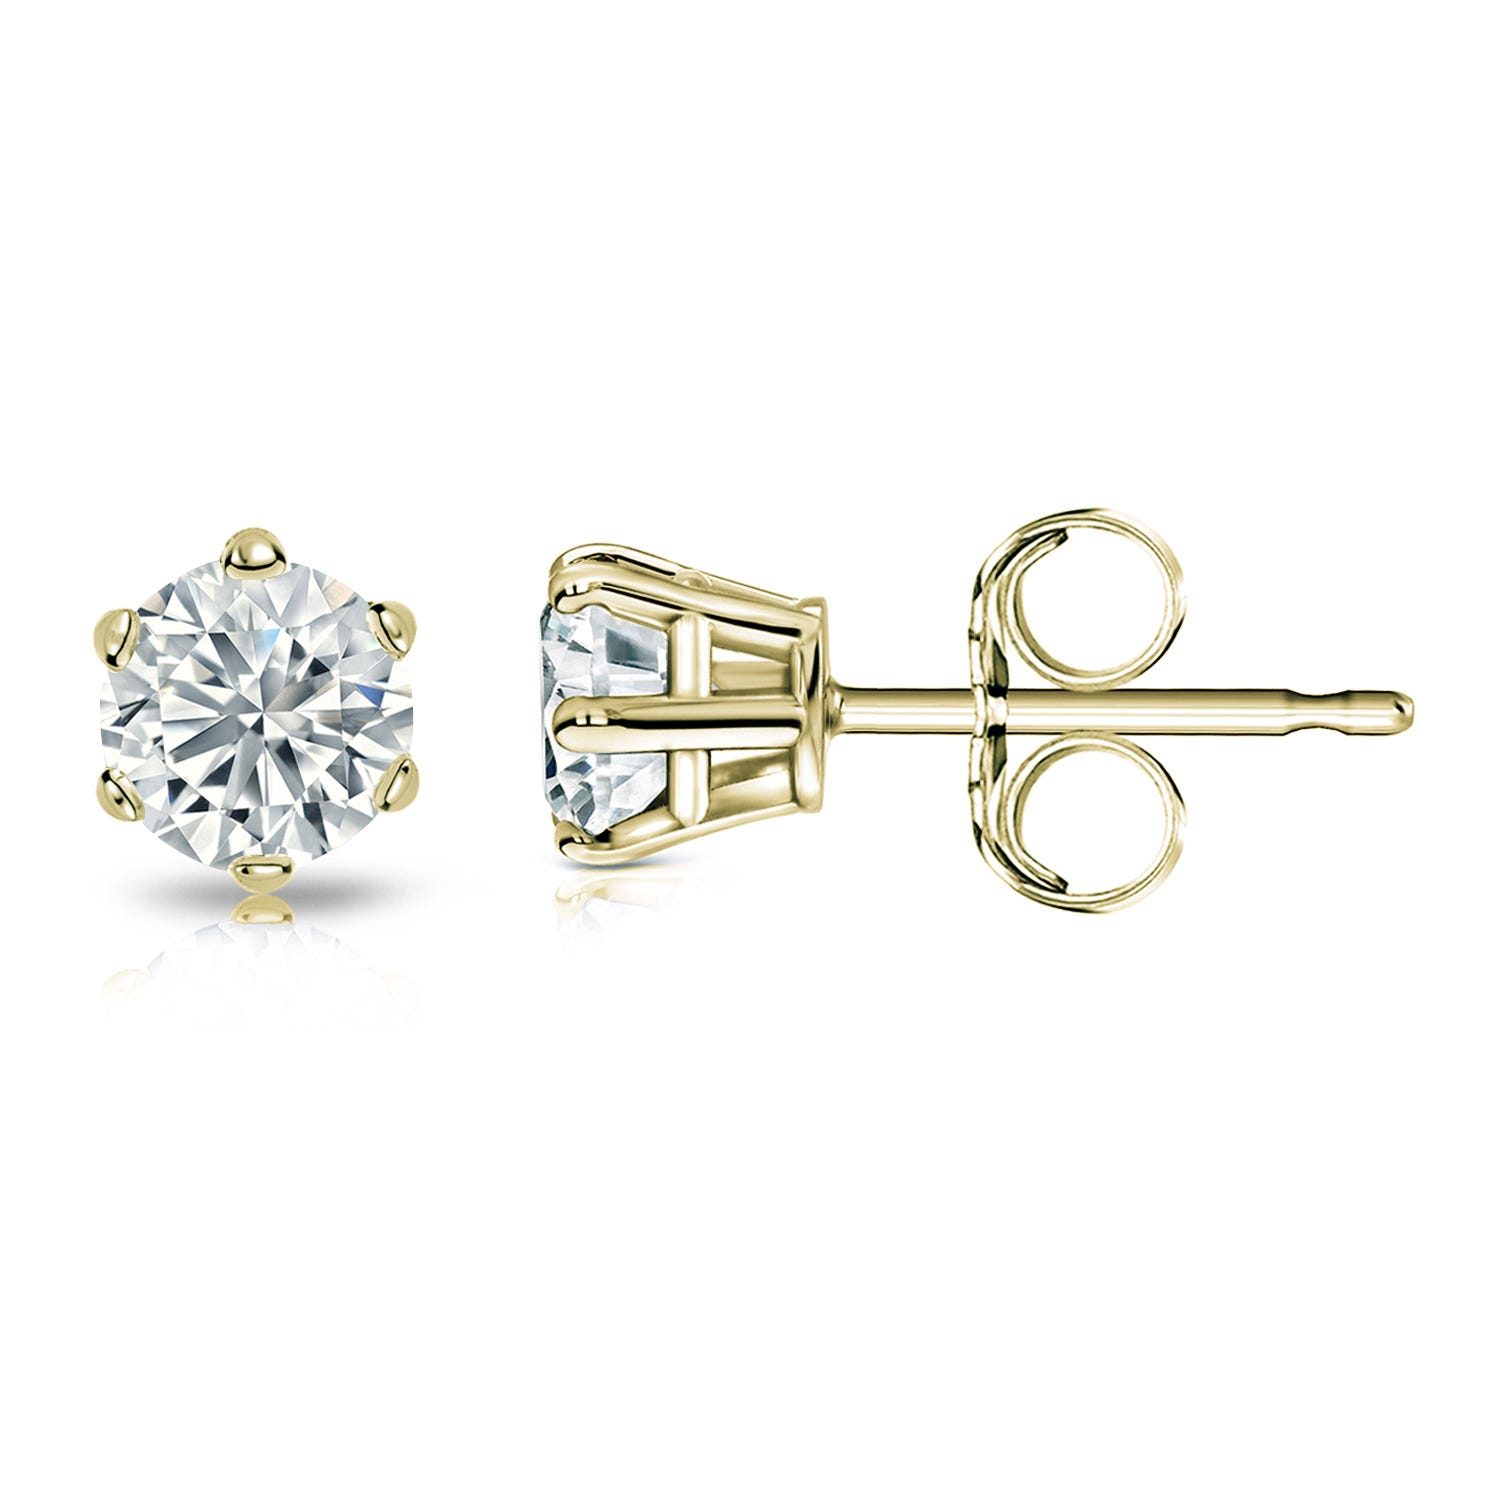 Round Diamond 3/4ctw. (IJ-I2) Solitaire Stud 6-Prong Earrings in 10K Yellow Gold